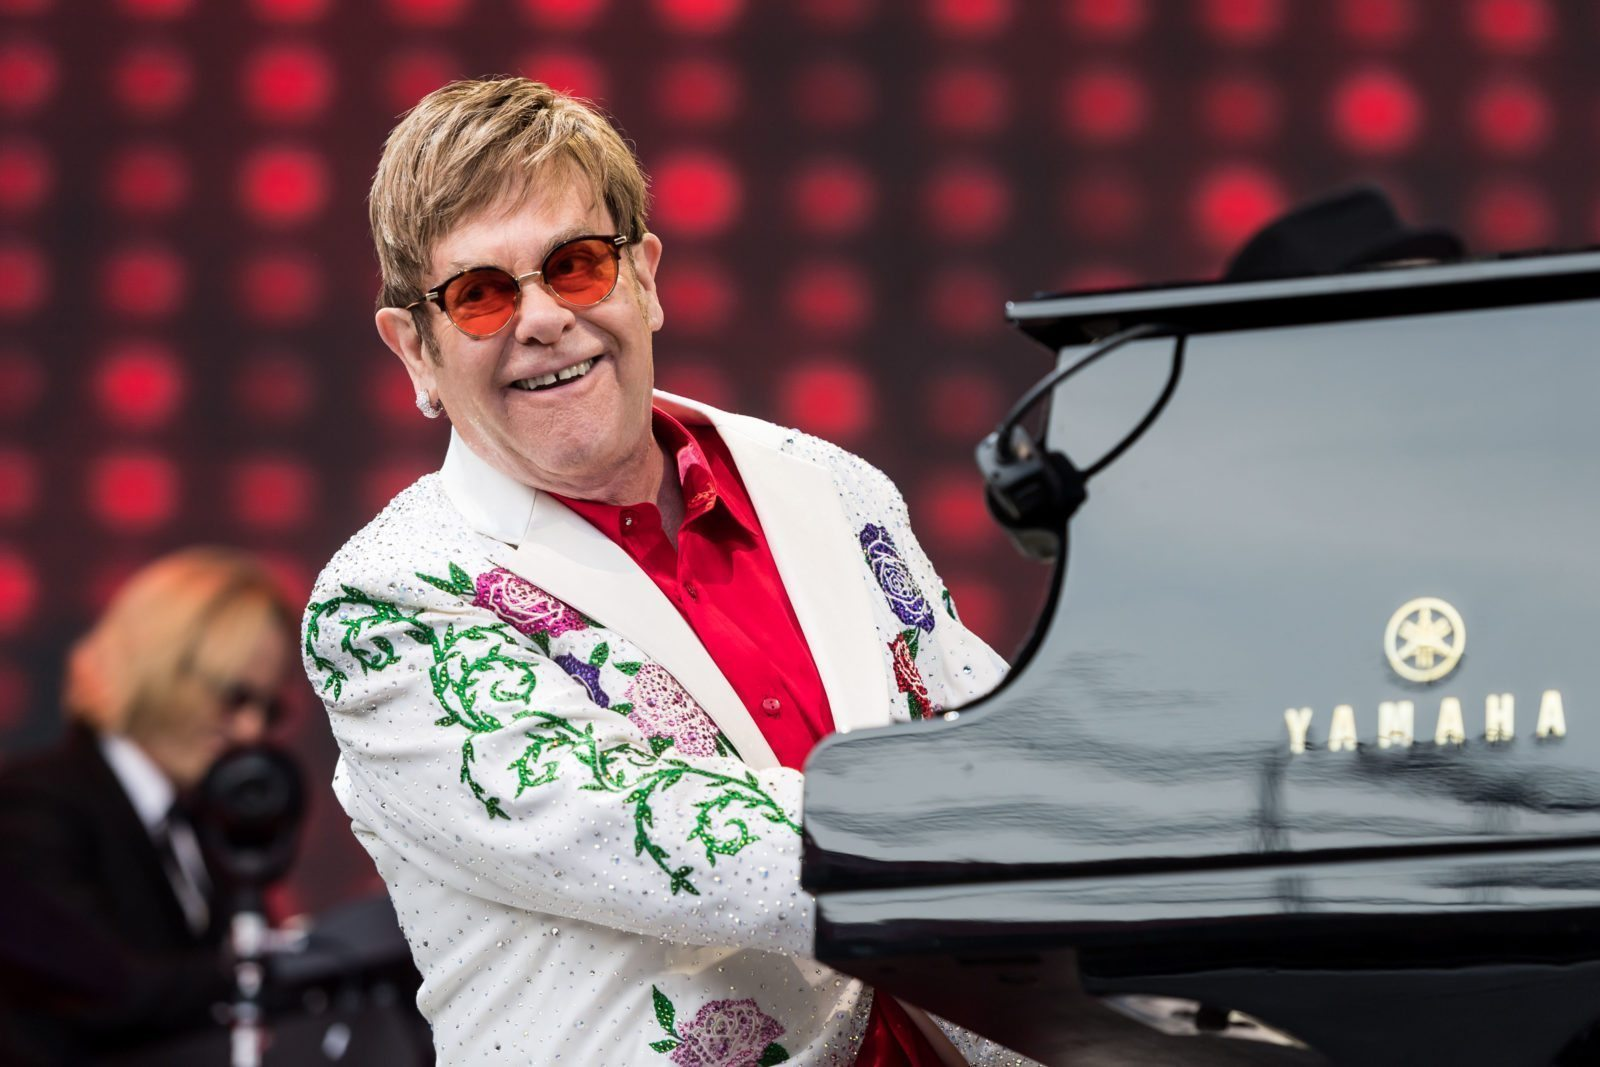 LONDON, ENGLAND - JUNE 03: Elton John performs live at Twickenham Stoop on June 3, 2017 in London, England. (Photo by Ian Gavan/Getty Images for Harlequins)